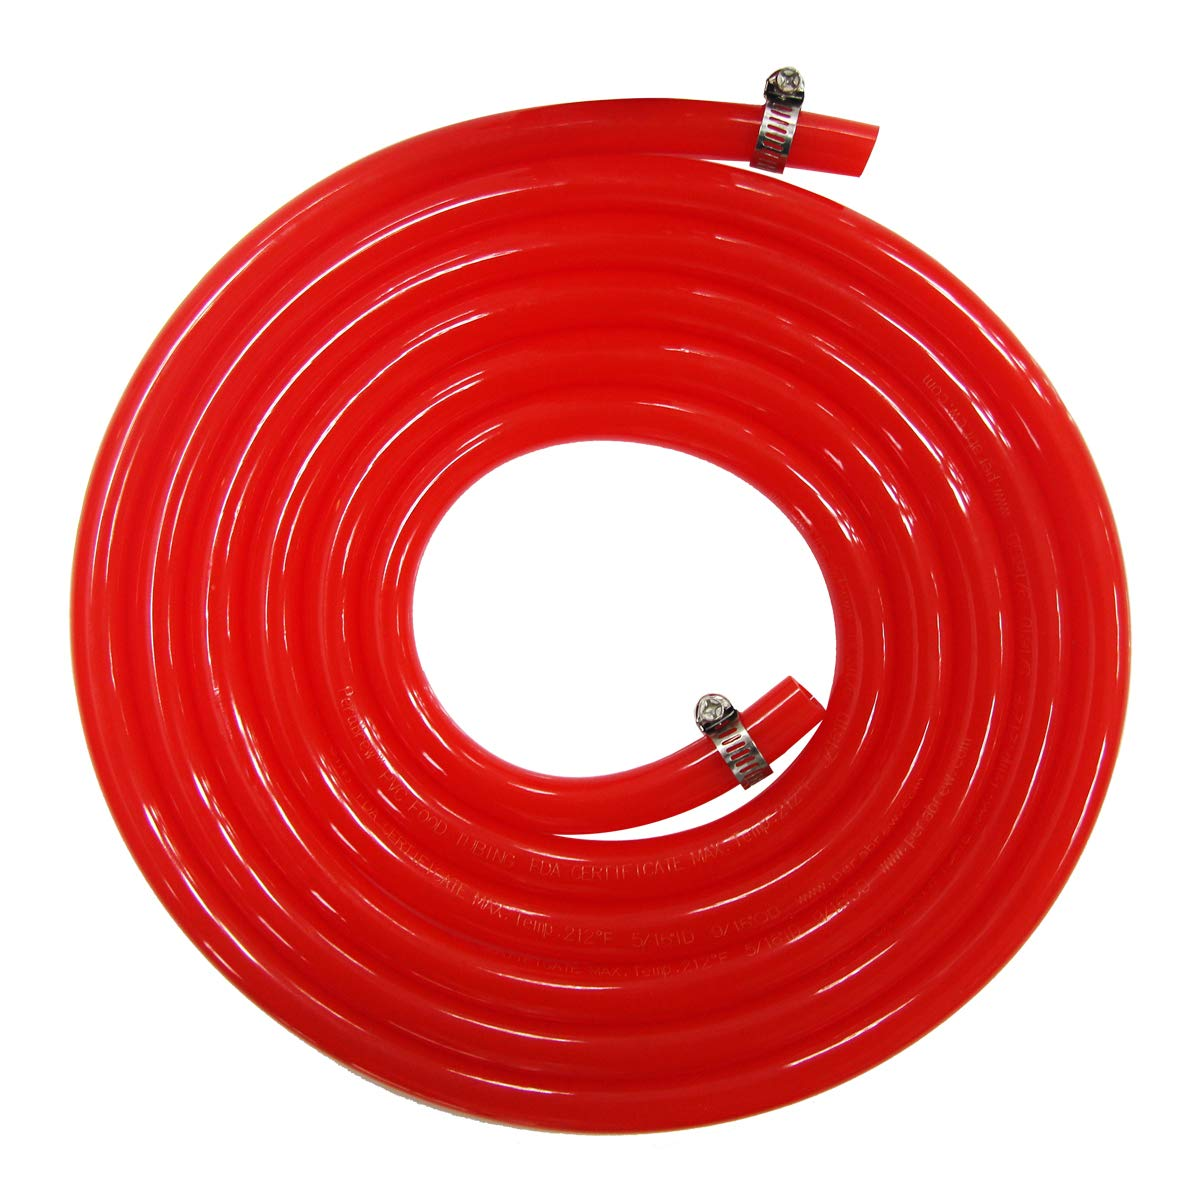 Homebrewing Kit CO2 Gas Line - Brand Luckeg including Gas Hose 5/16 inch ID, 9/16 inch OD,10ft Length, 2 PCS Stainless Steel Worm Clamp, used for Beer Keg, Beer Kegerator, Quality Guarantee by LUCKEG